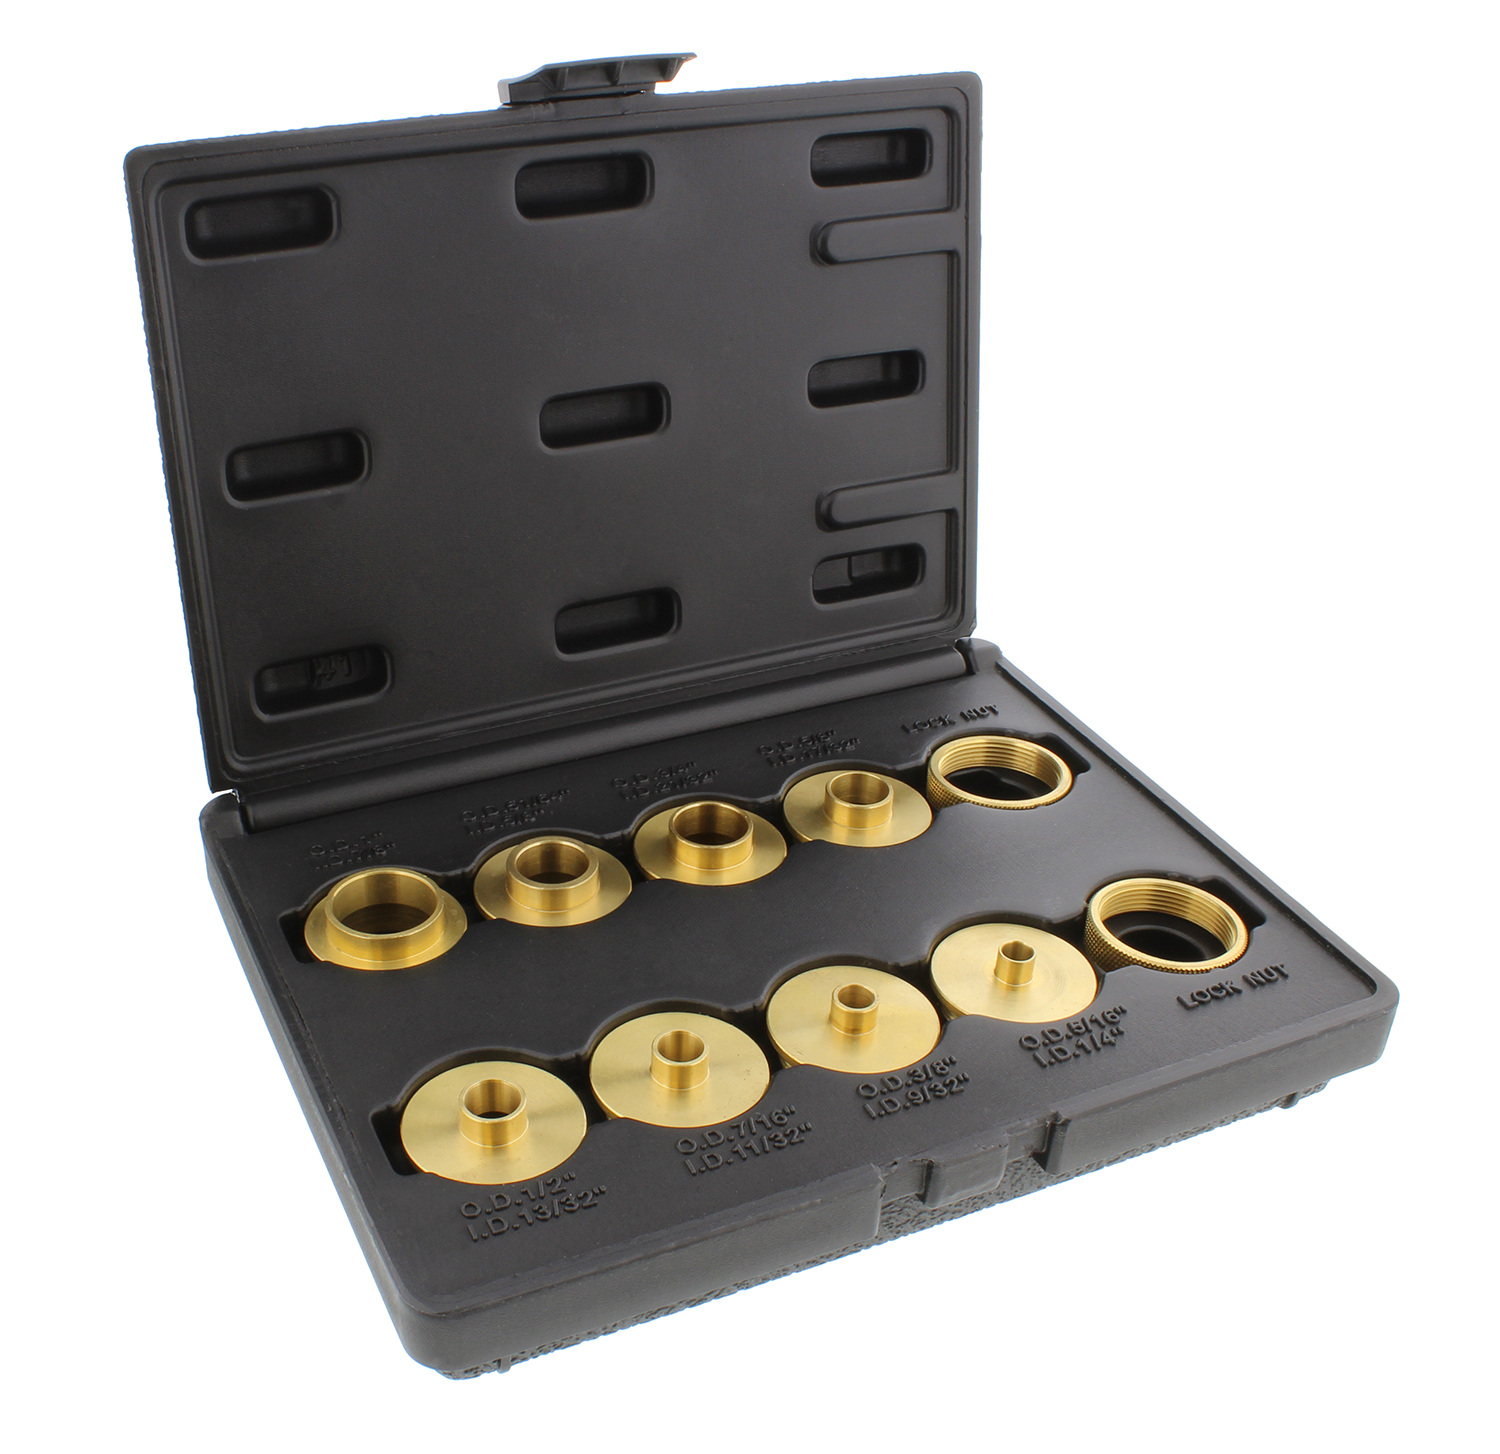 Brass Router Bushing Set with Case - homedepot.com